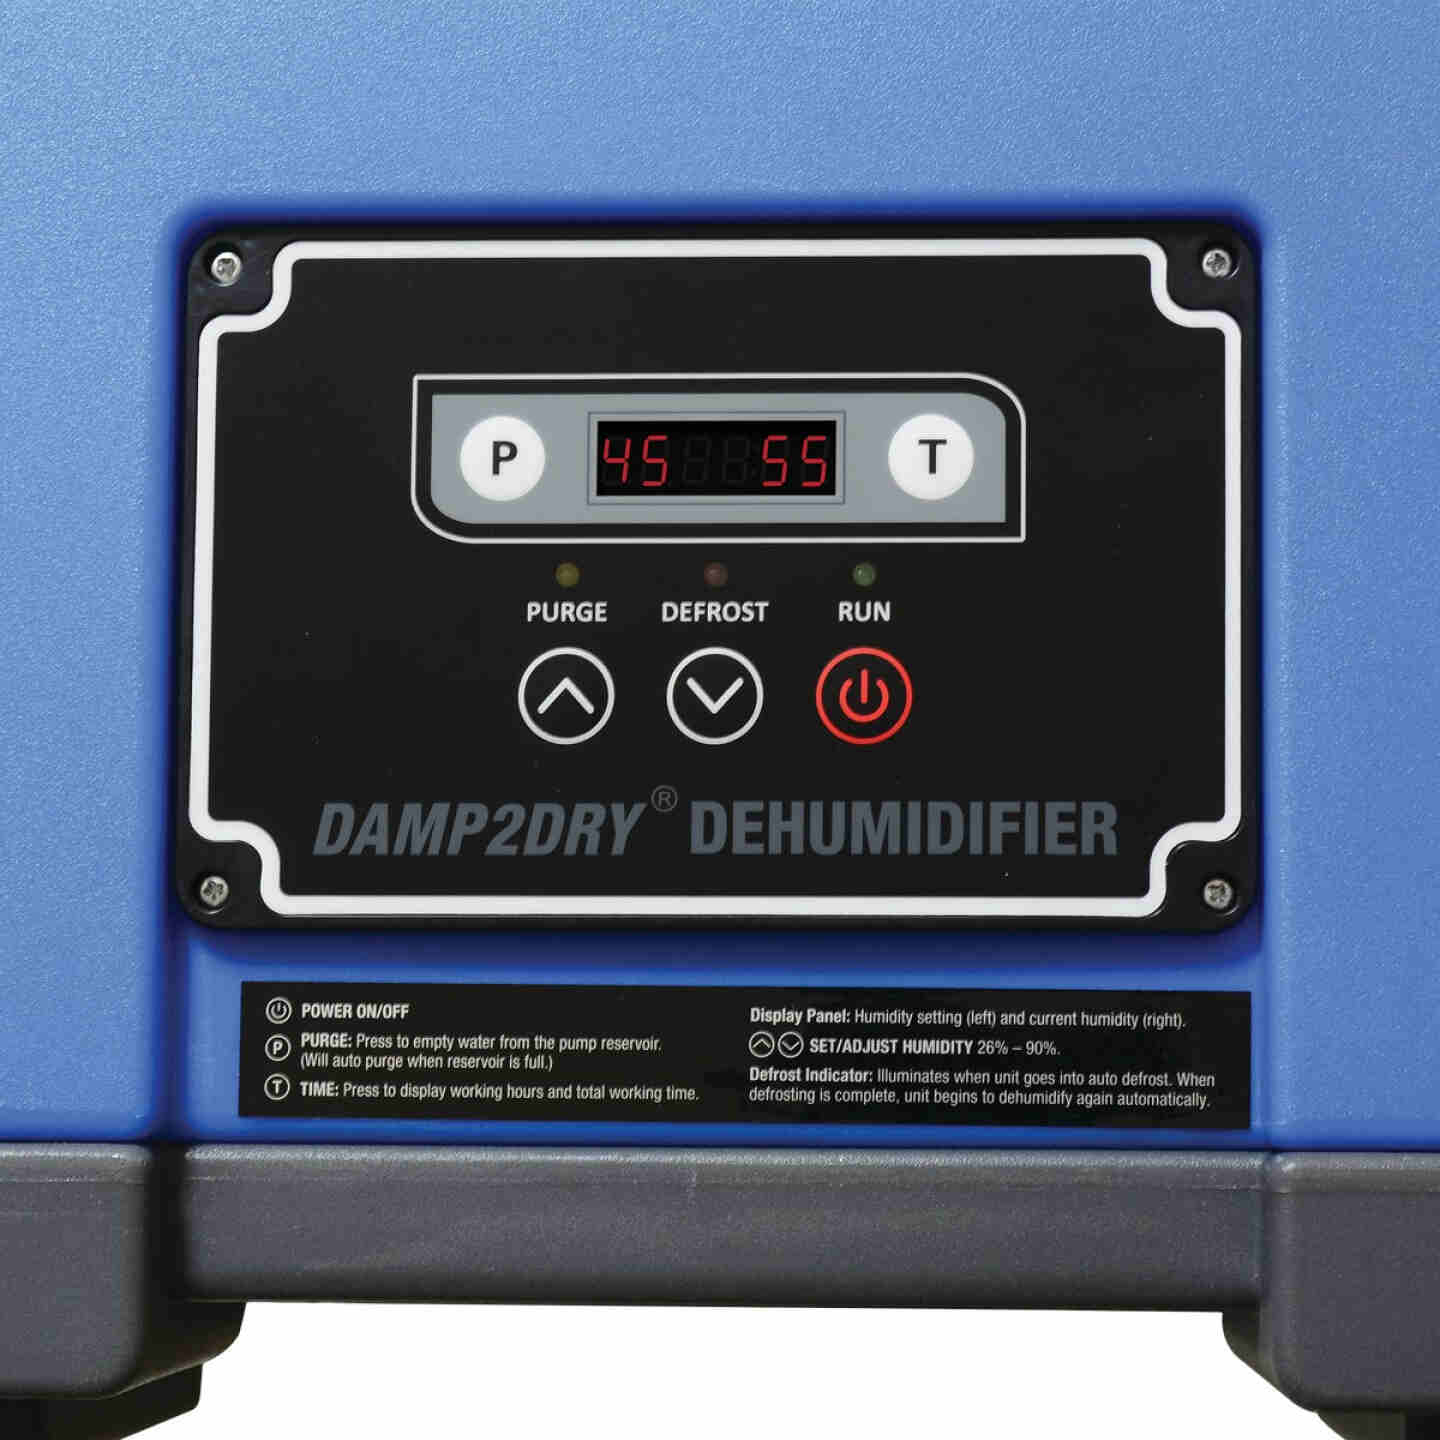 Perfect Aire Damp2Dry 250 Pt./Day 15,500 Sq. Ft. Commercial Dehumidifier Image 3